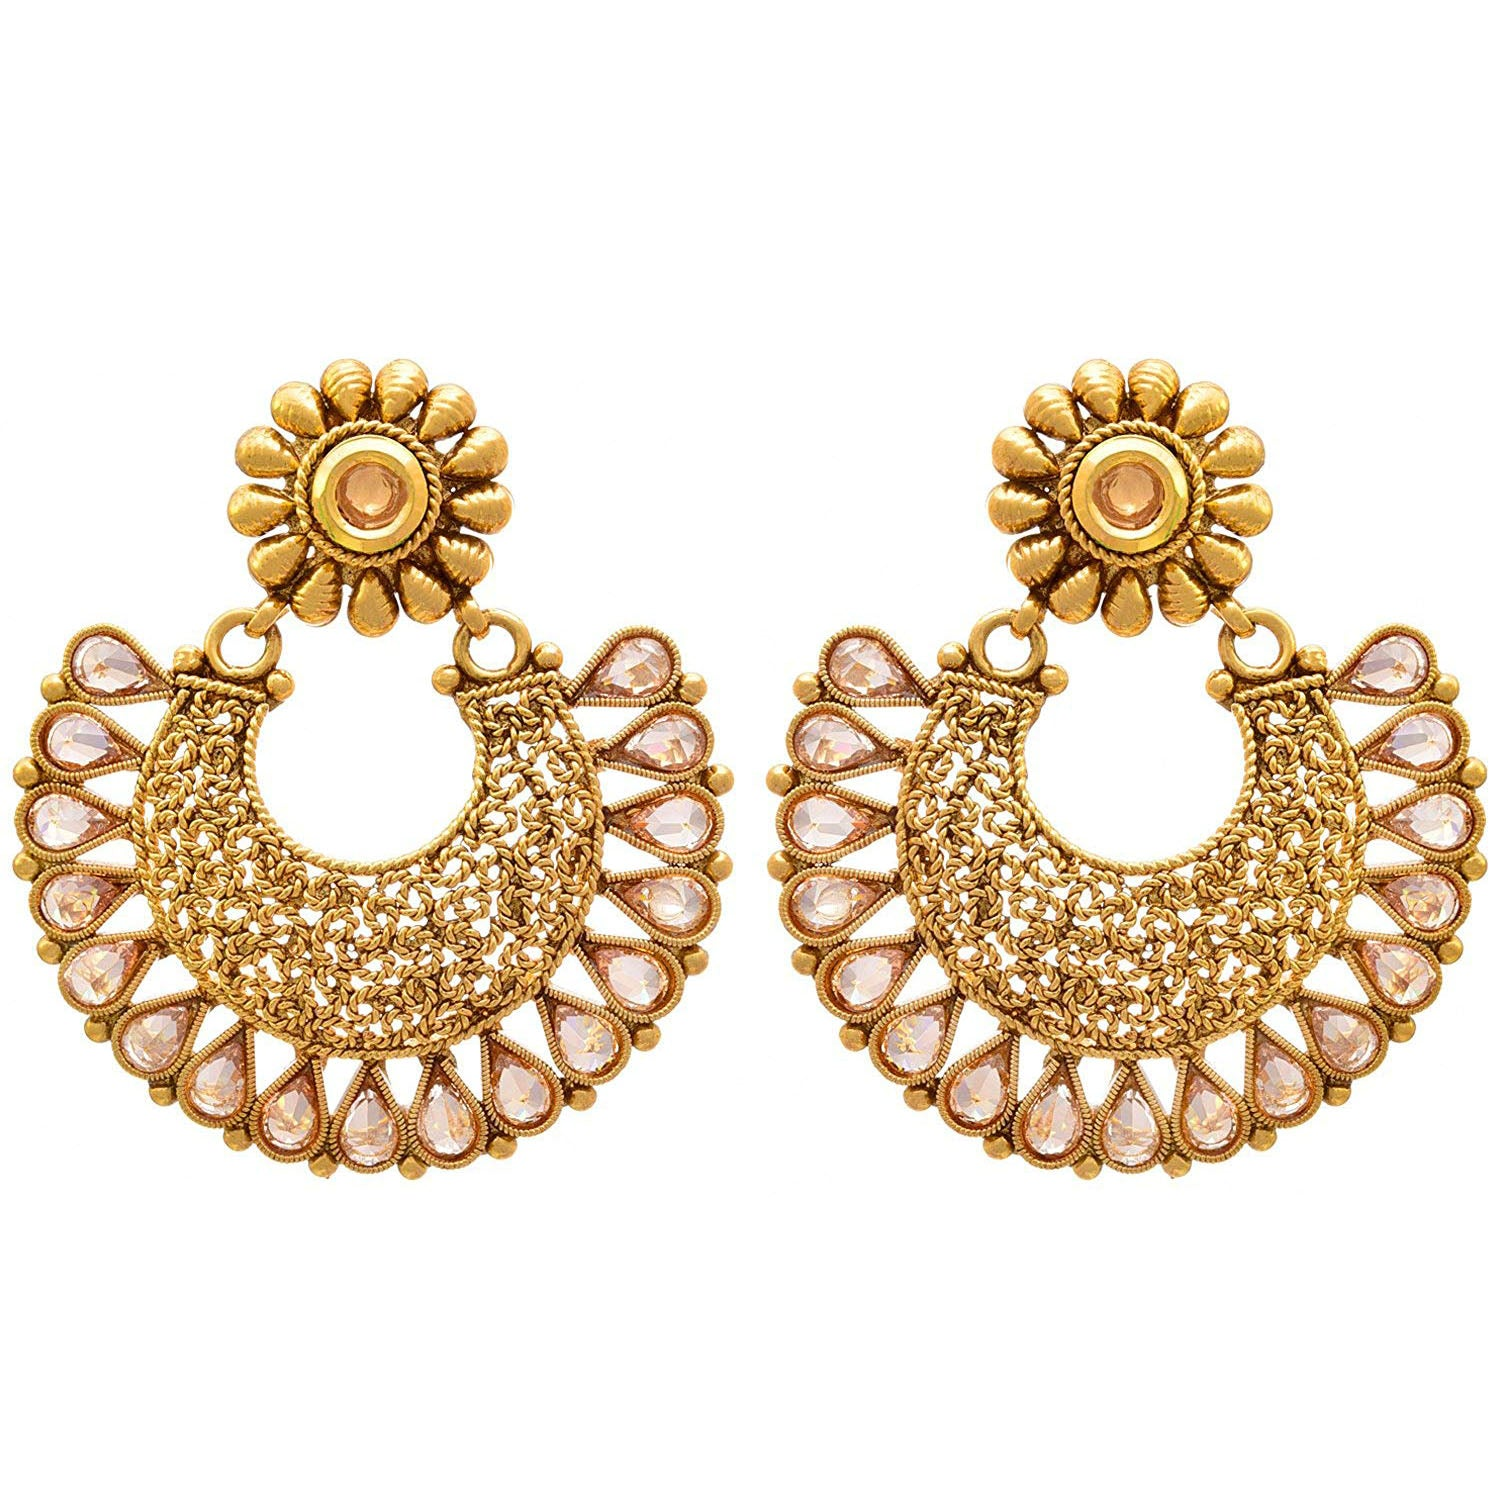 Traditional Ethnic Polki Diamond Kundan Designer One Gram Gold Plated Earring for Women & Girls. (Champagne Color)